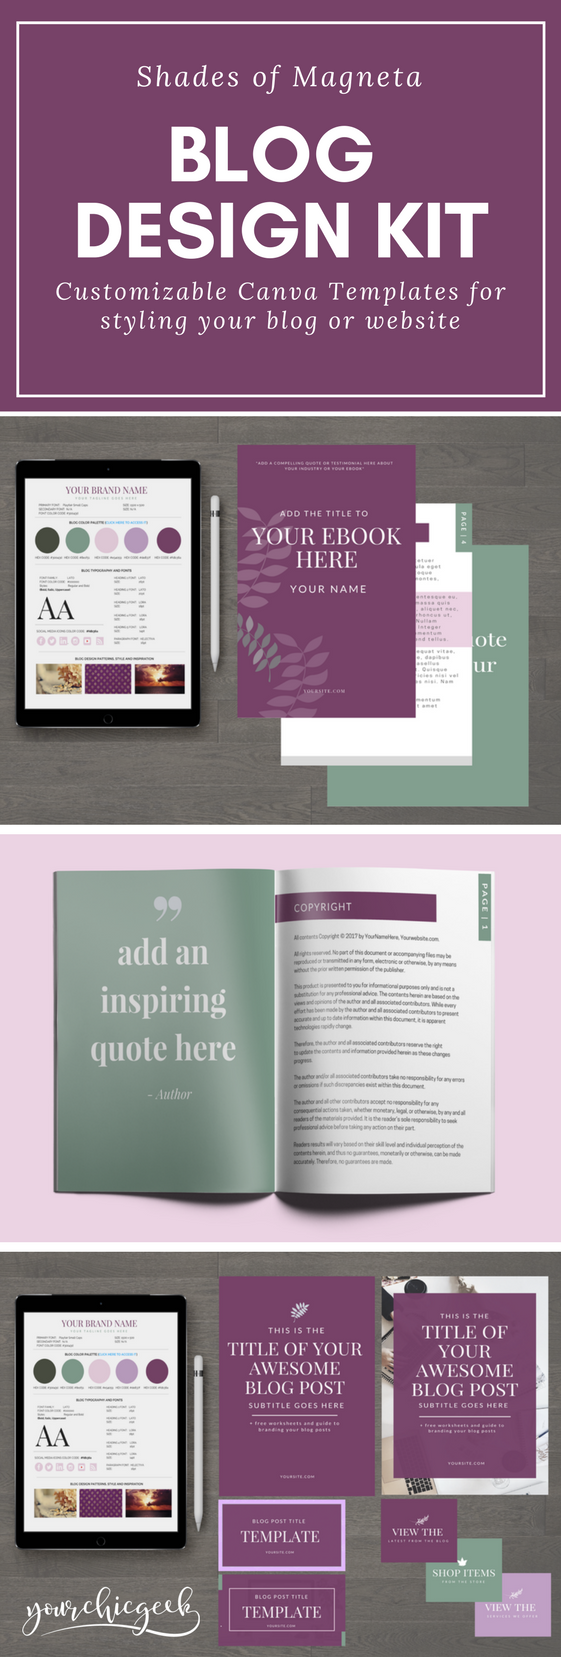 Shades of Magenta Blog and Website Design Kit